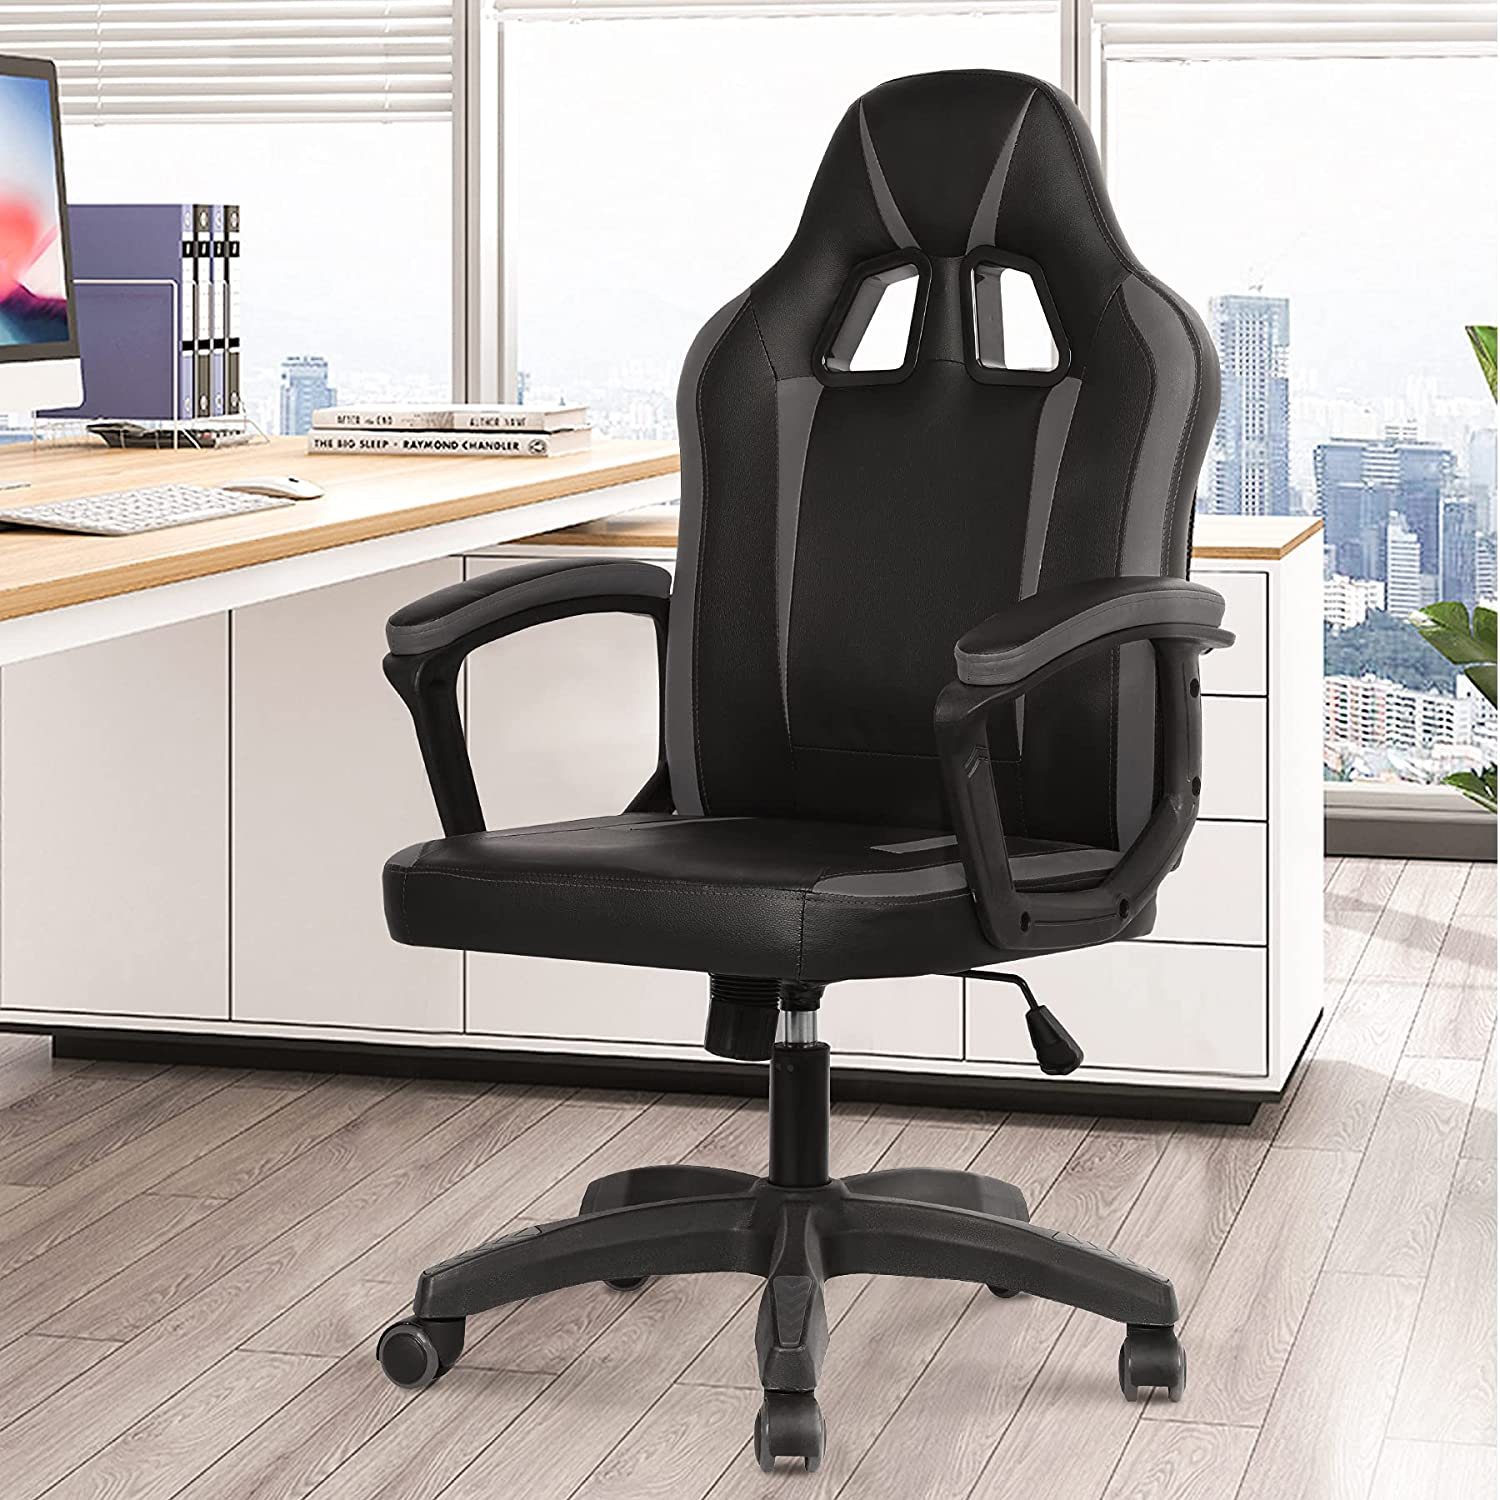 Adjustable Ergonomic Super sale Computer Gaming Recommended Chair PU Swivel Leather Ex